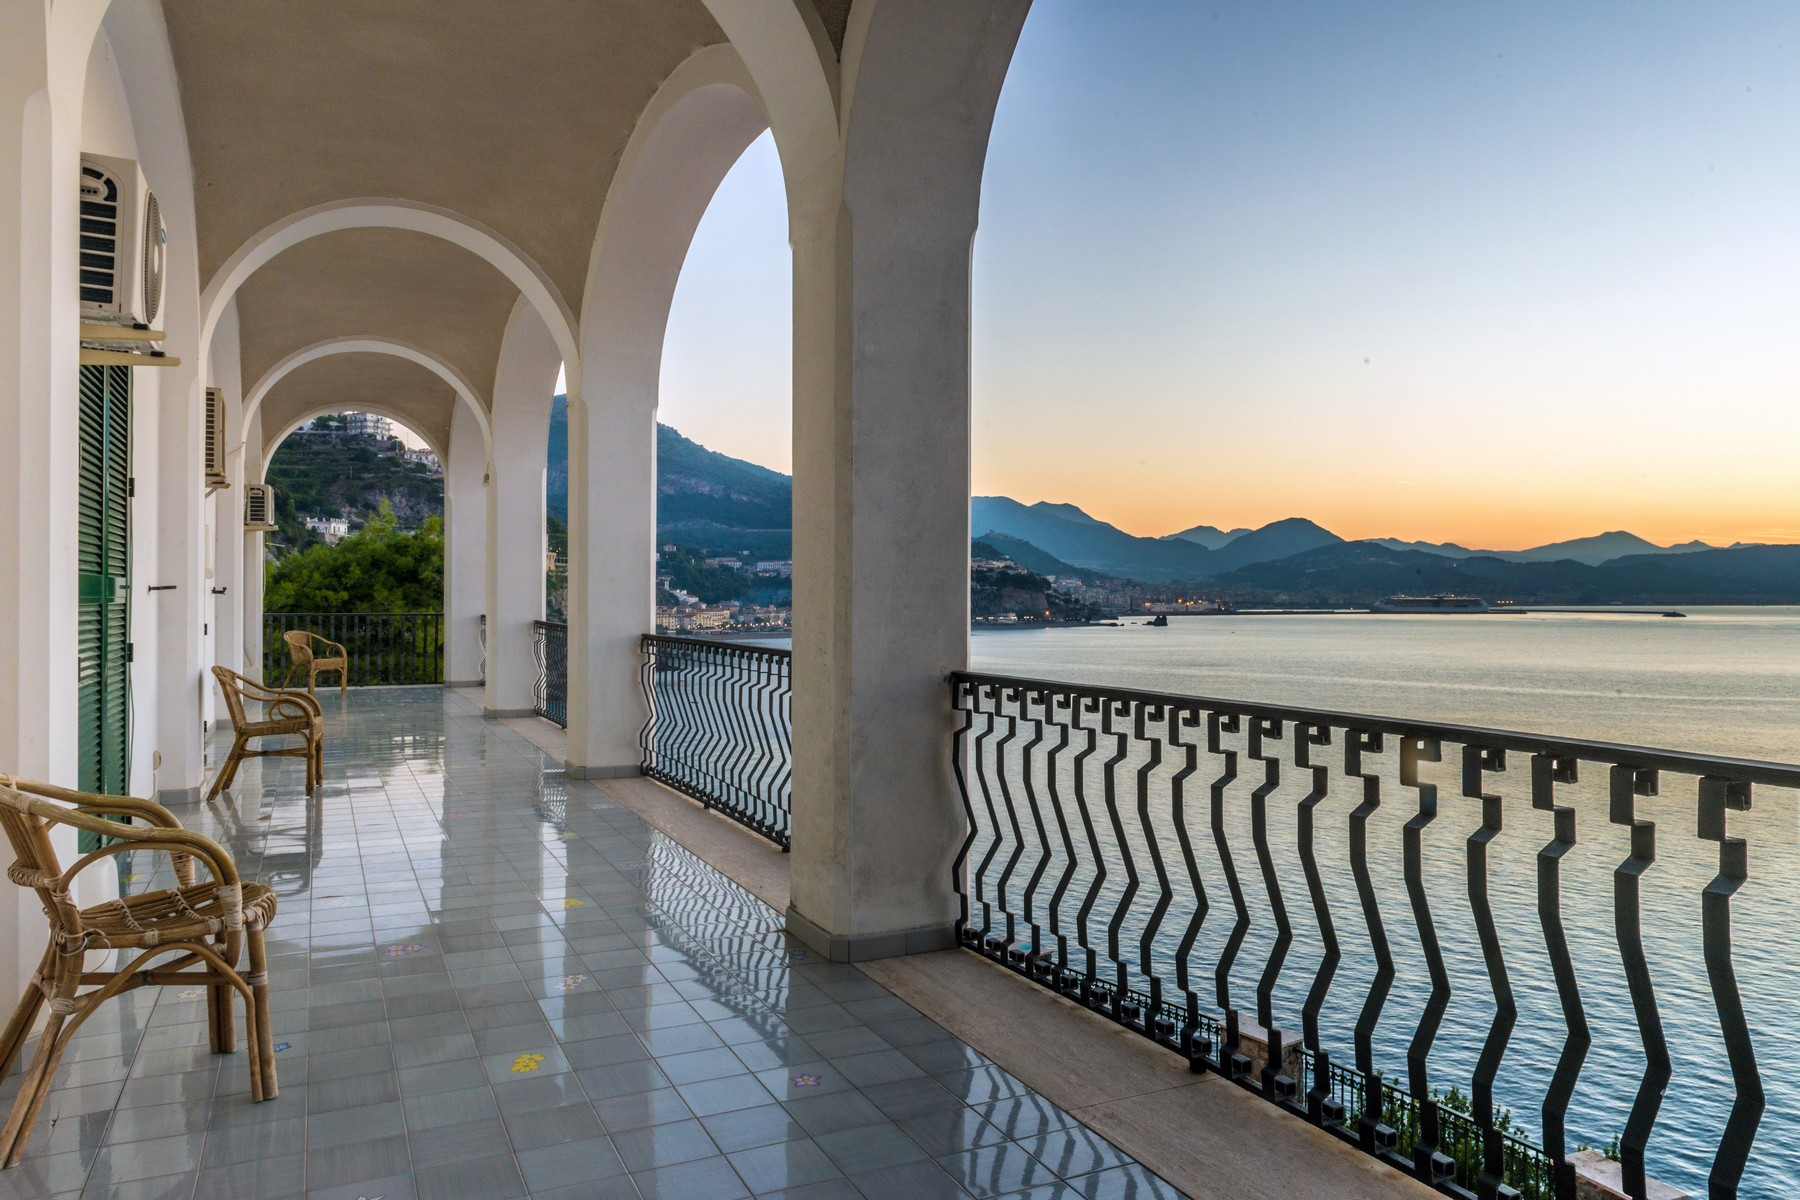 Single Family Home for Sale at Unique seafront villa on the Amalfi Coast Vietri sul Mare Vietri Sul Mare, Salerno 84019 Italy